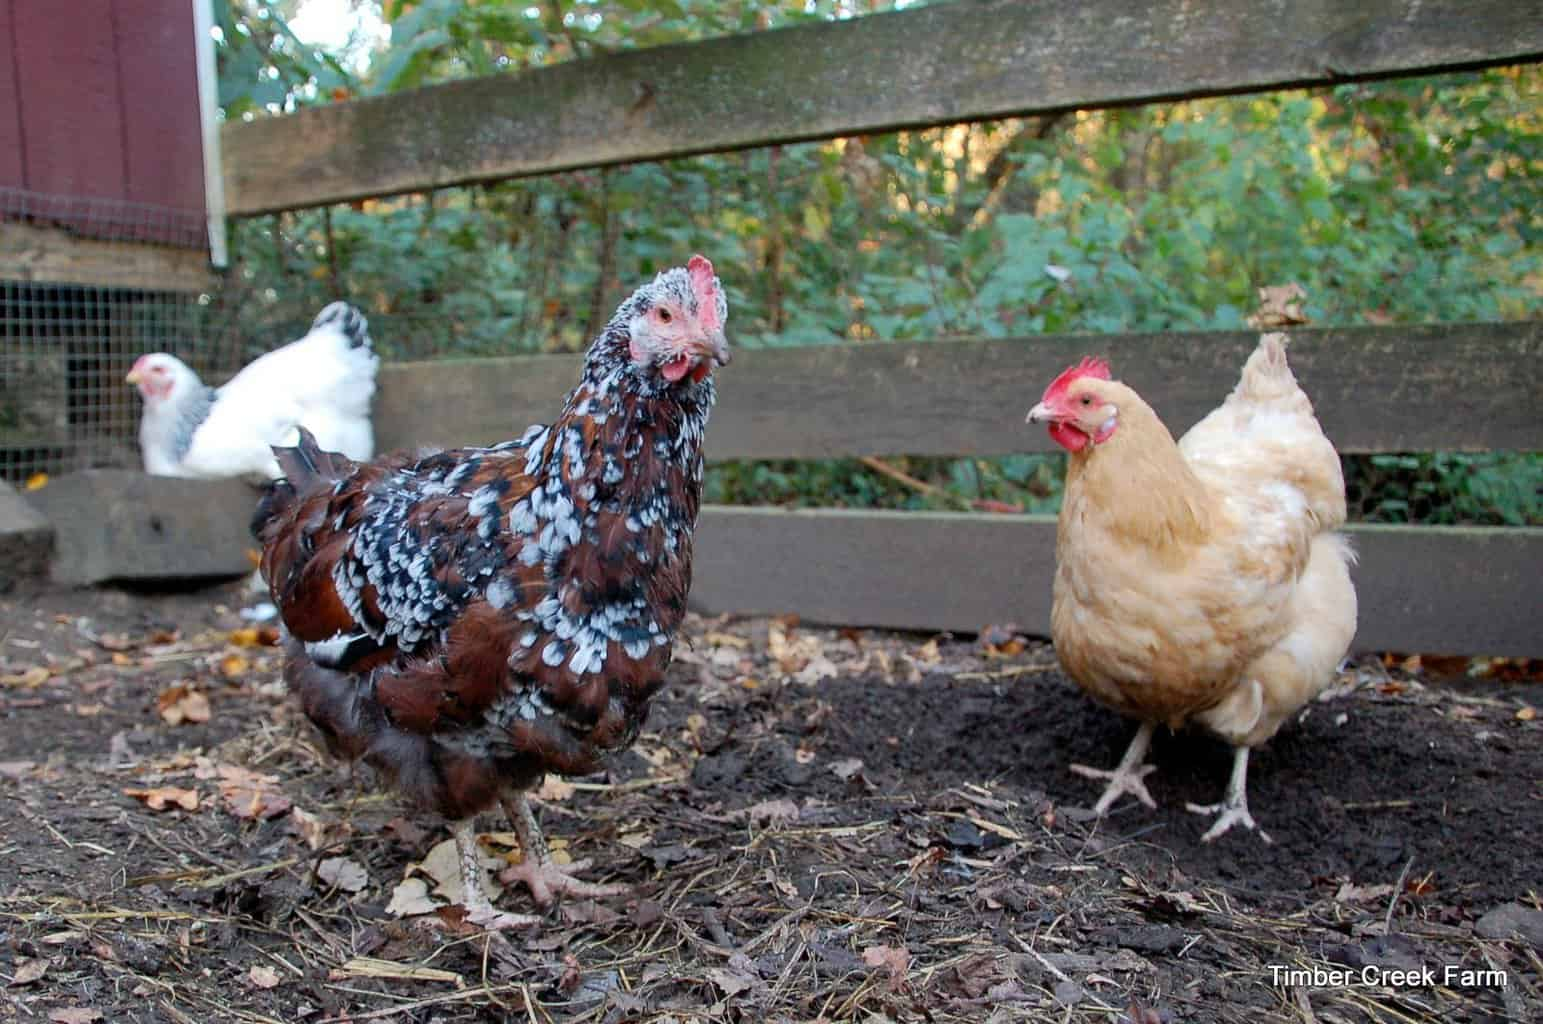 hens at Timber Creek Farm